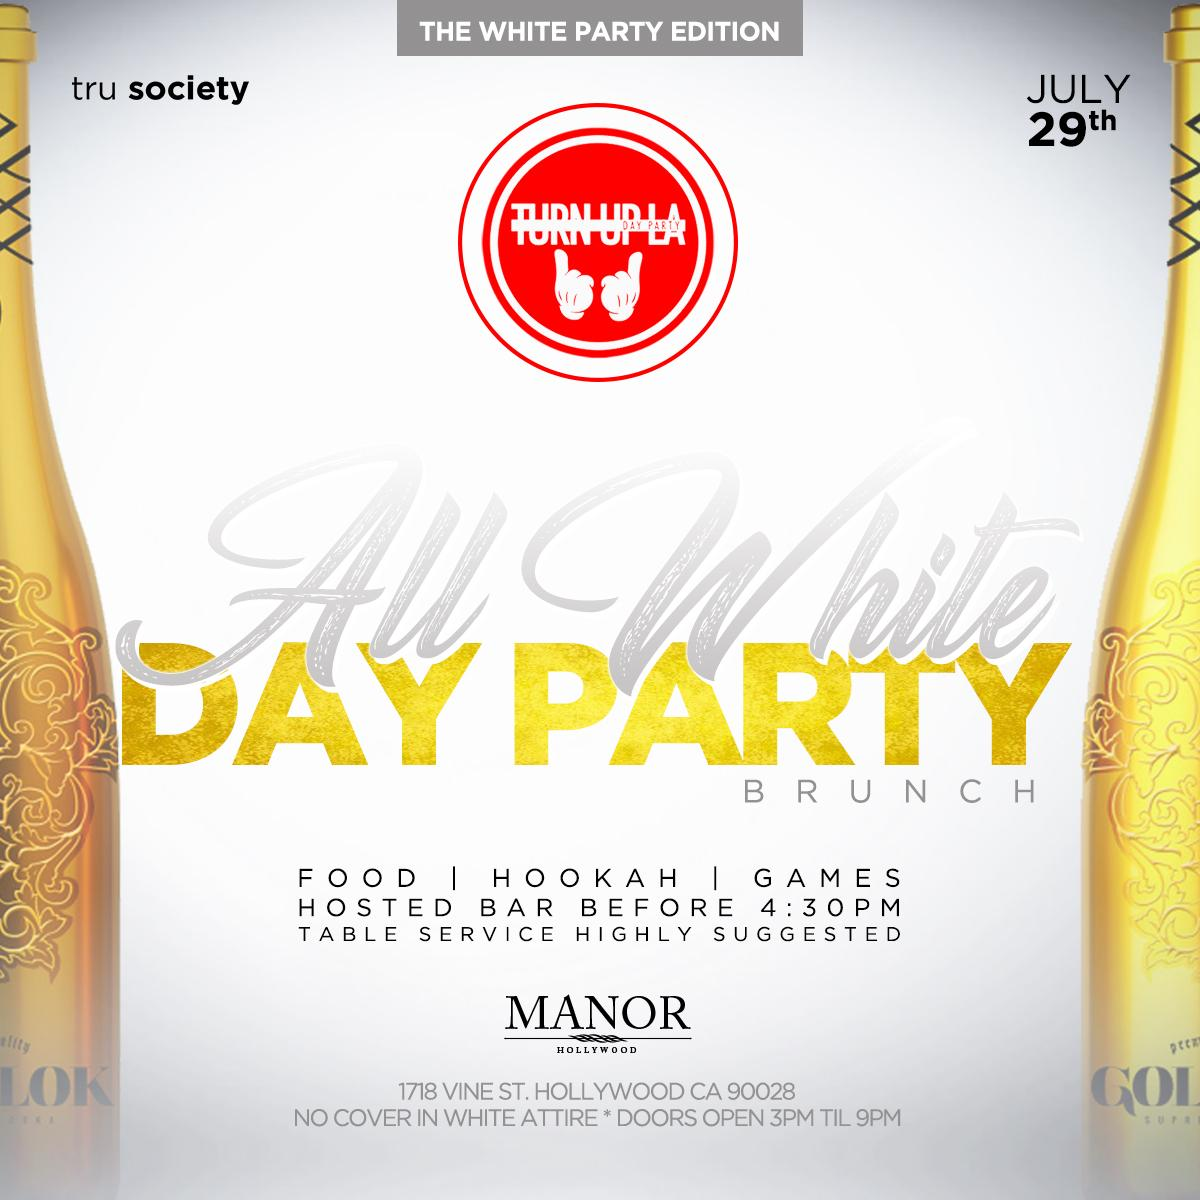 *TURN UP LA DAY PARTY* presented by TRU SOCIETY. *TURN UP LA DAY PARTY* presented by TRU SOCIETY